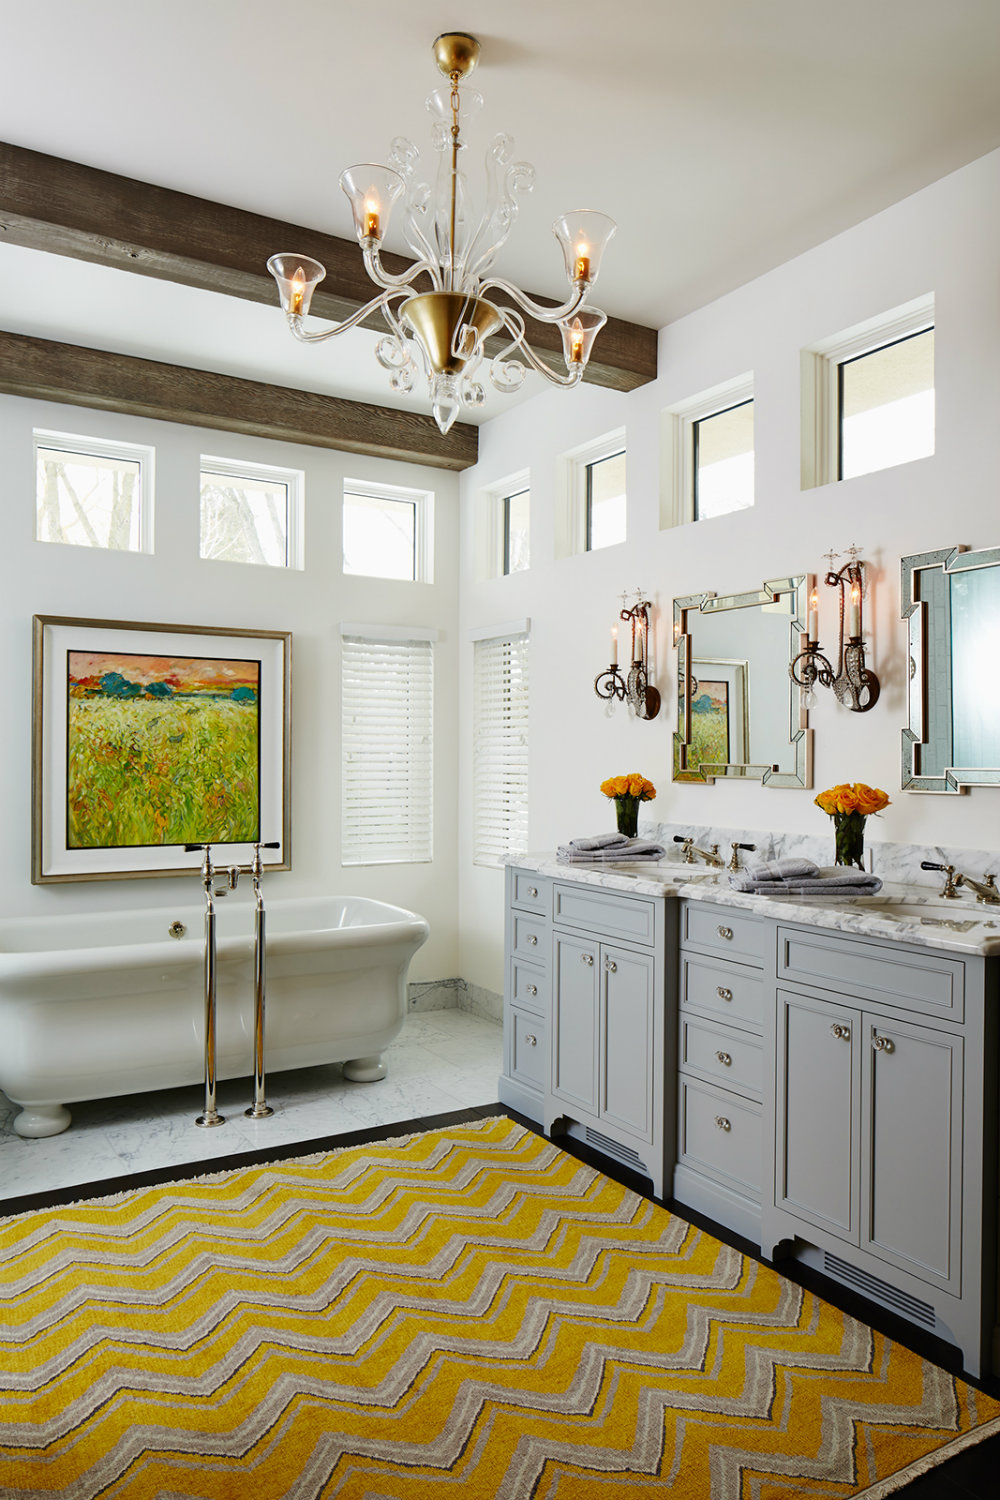 10 Luxury Bathrooms For The Master Bedroom Of Your Dreams 04 luxury bathrooms 10 Luxury Bathrooms For The Master Bedroom Of Your Dreams 10 Luxury Bathrooms For The Master Bedroom Of Your Dreams 04